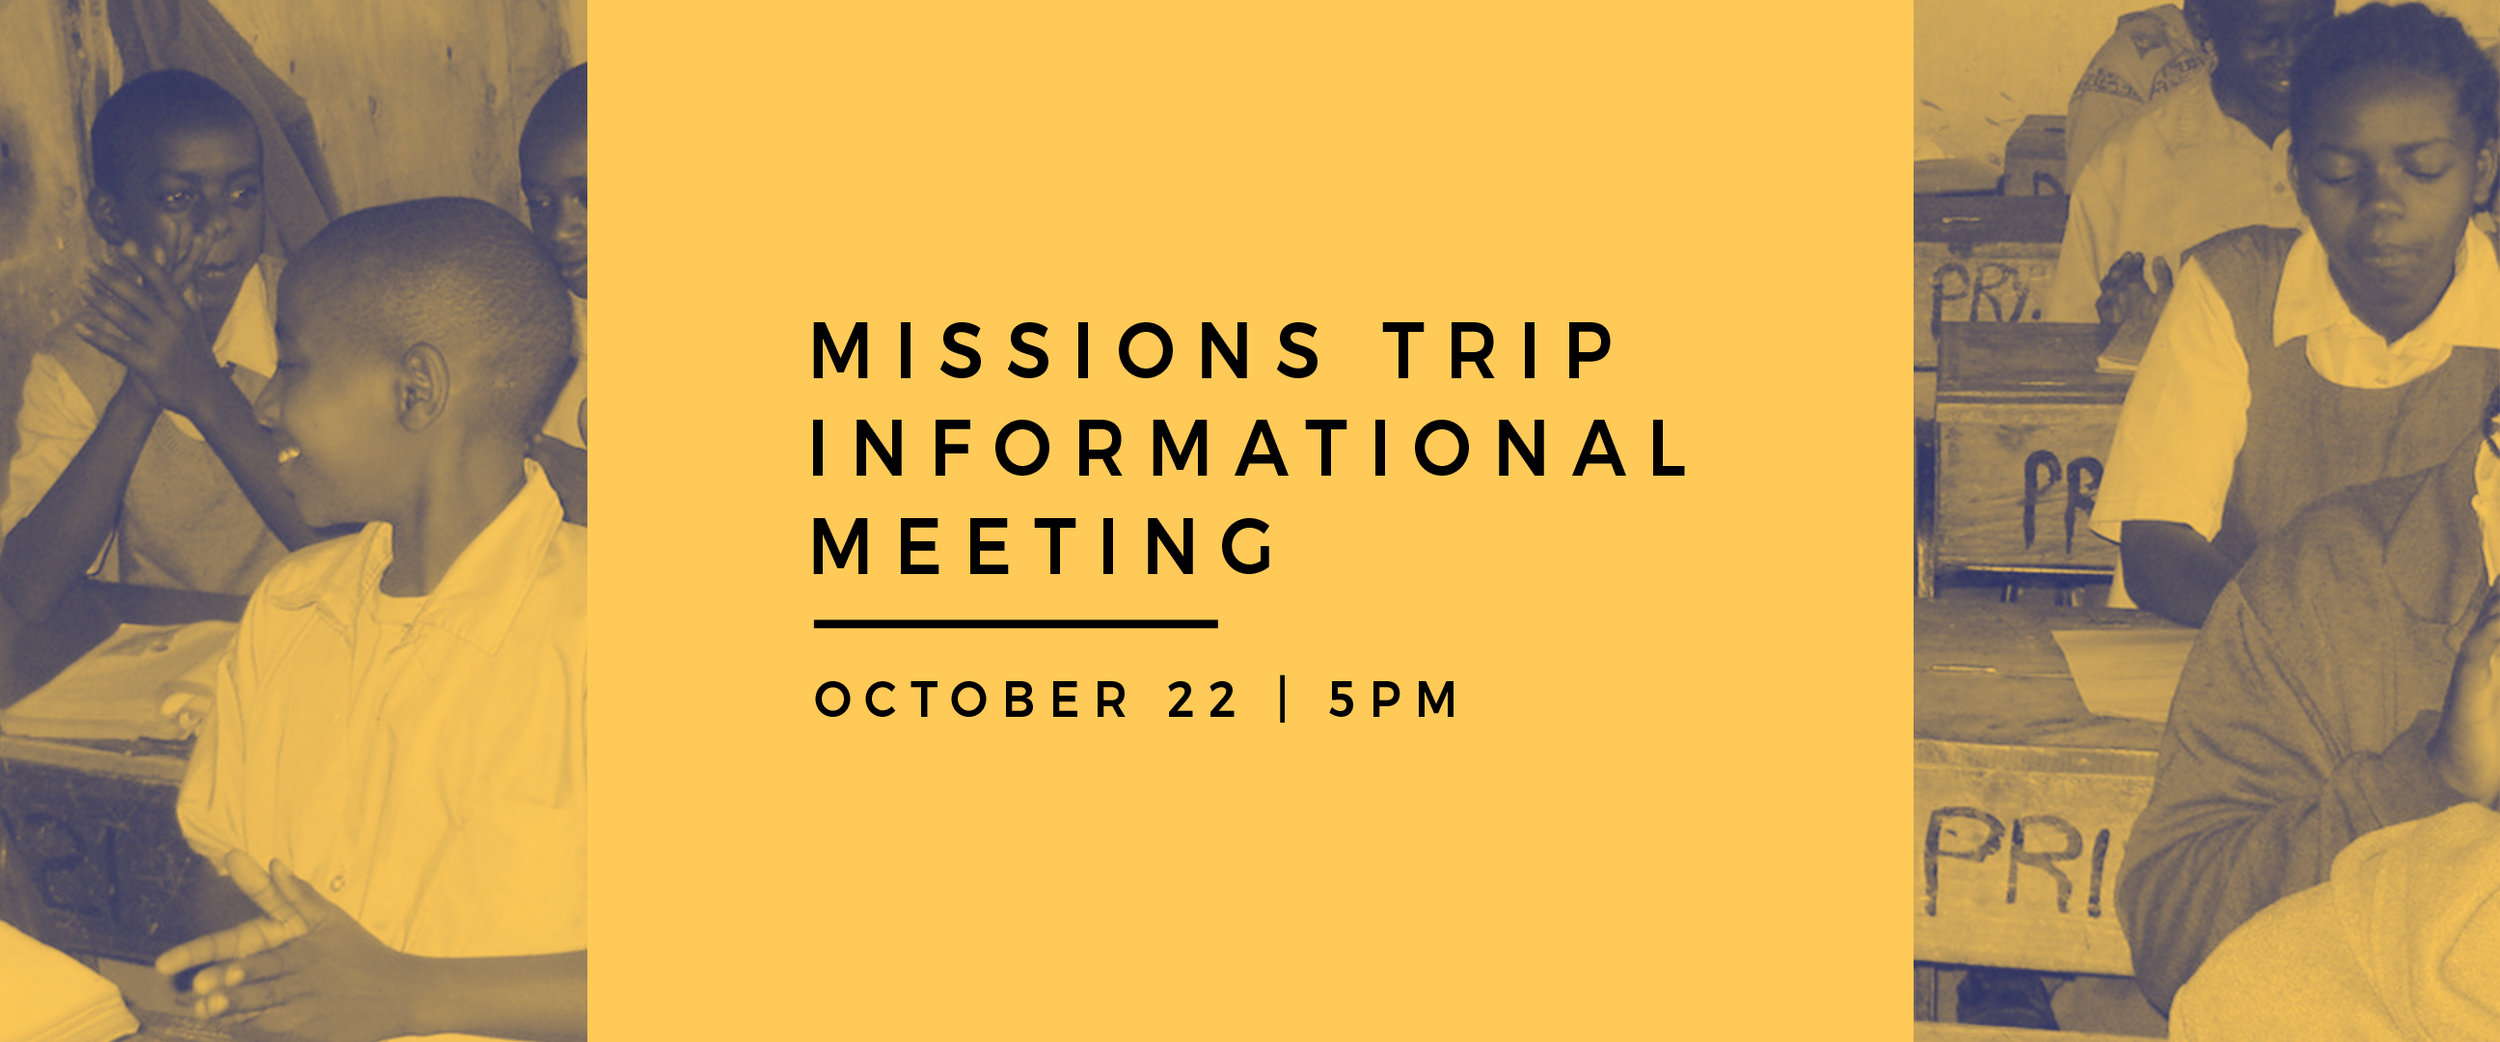 missions-info-meeting-Slider(1).jpg